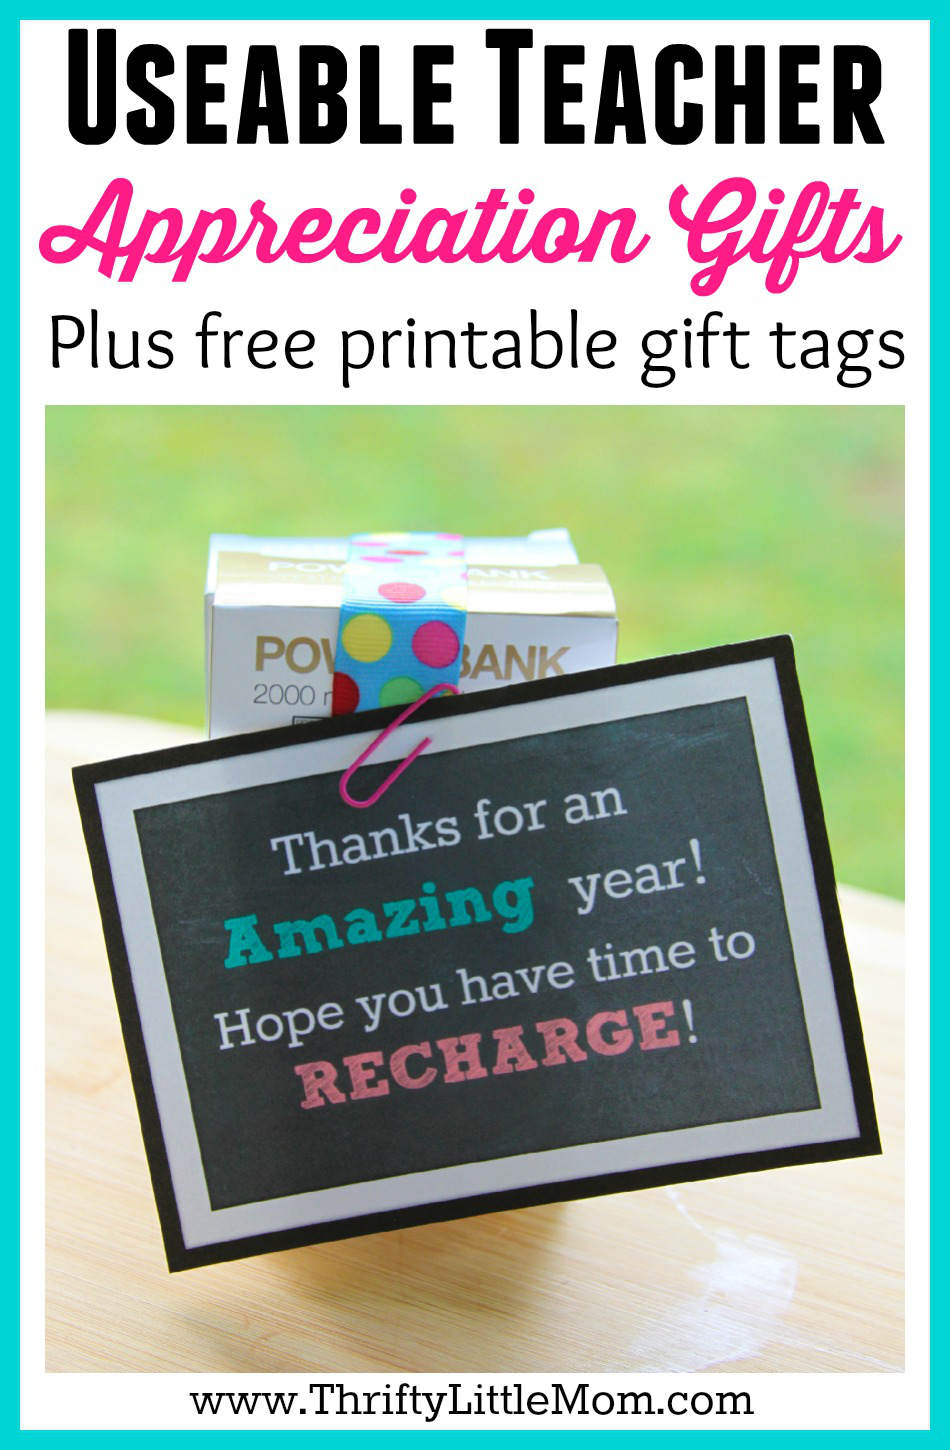 Useable Teacher Appreciation Gifts